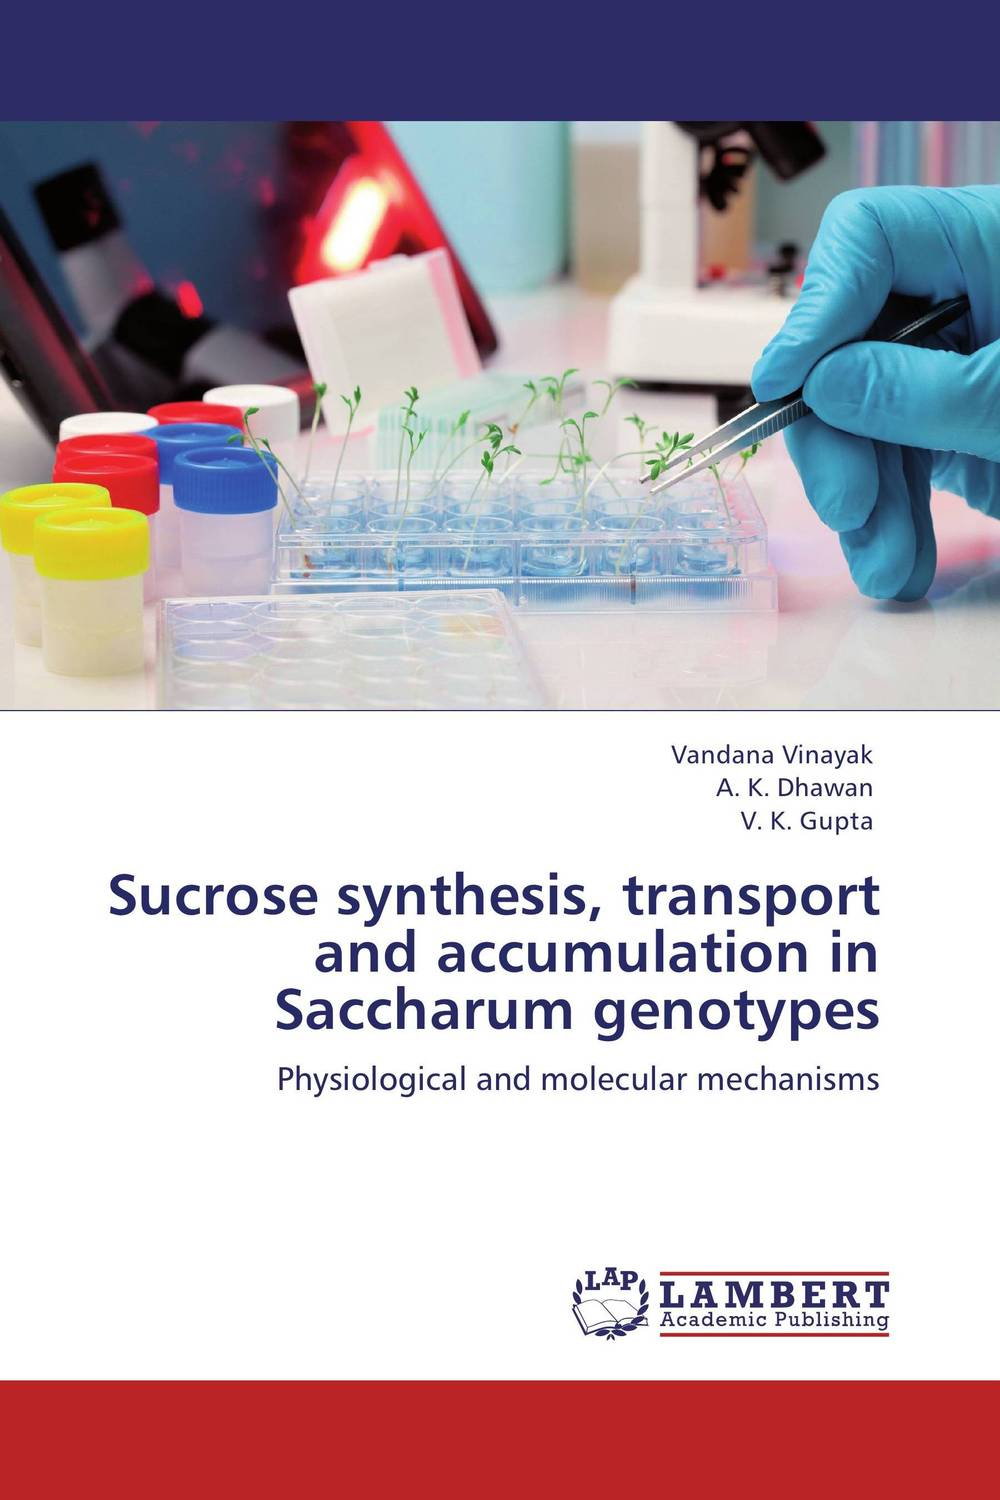 Sucrose synthesis, transport and accumulation in Saccharum genotypes d rakesh s s kalyan kamal and sumair faisal ahmed synthesis